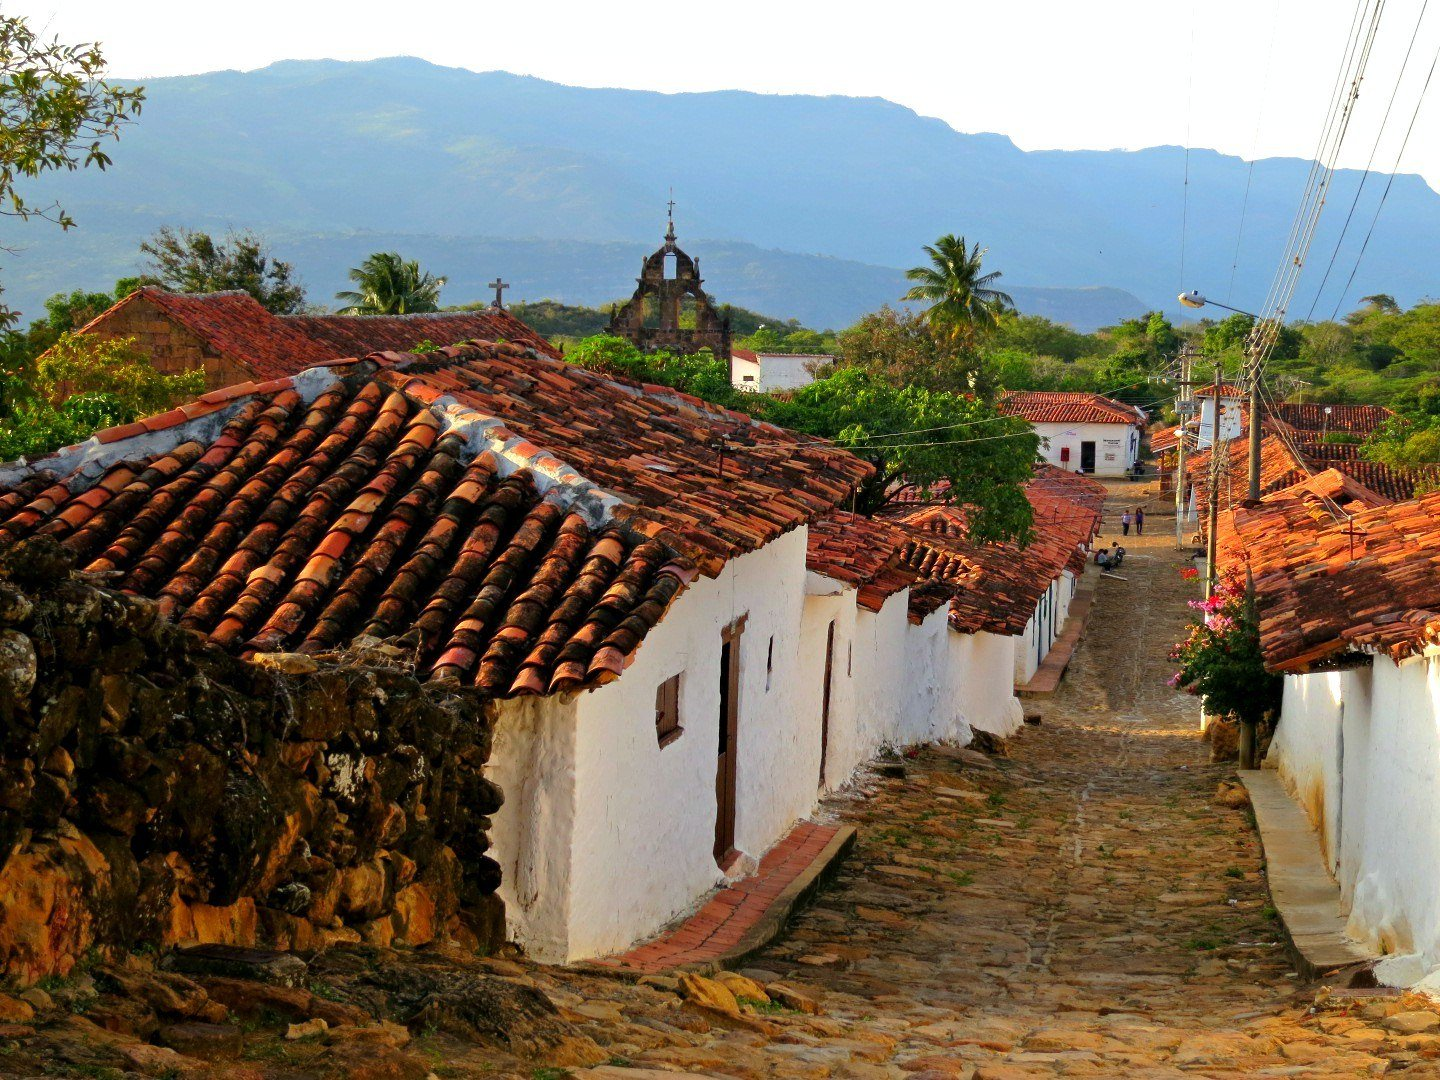 Guane on the Camino Real hike from Barichara in the Santander region near San Gil, Colombia. To get there, just take a bus from San Gil! Read all about transportation in Colombia in our guide.